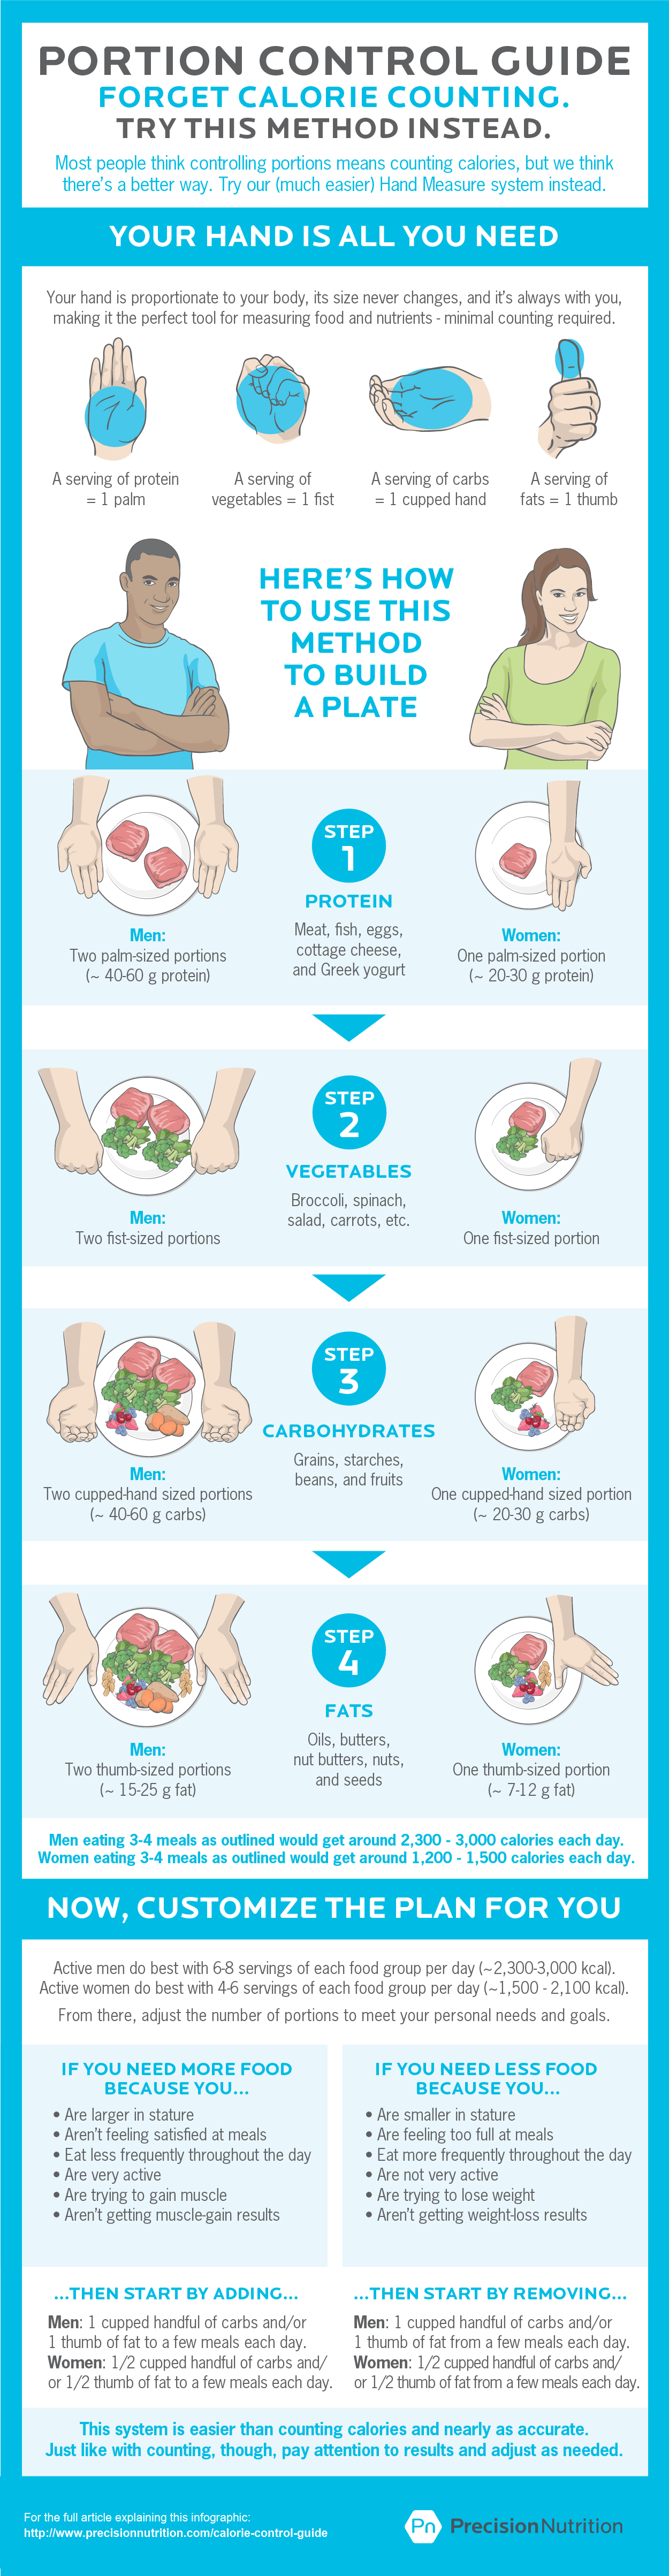 the-best-calorie-control-guide-infographic-image.png